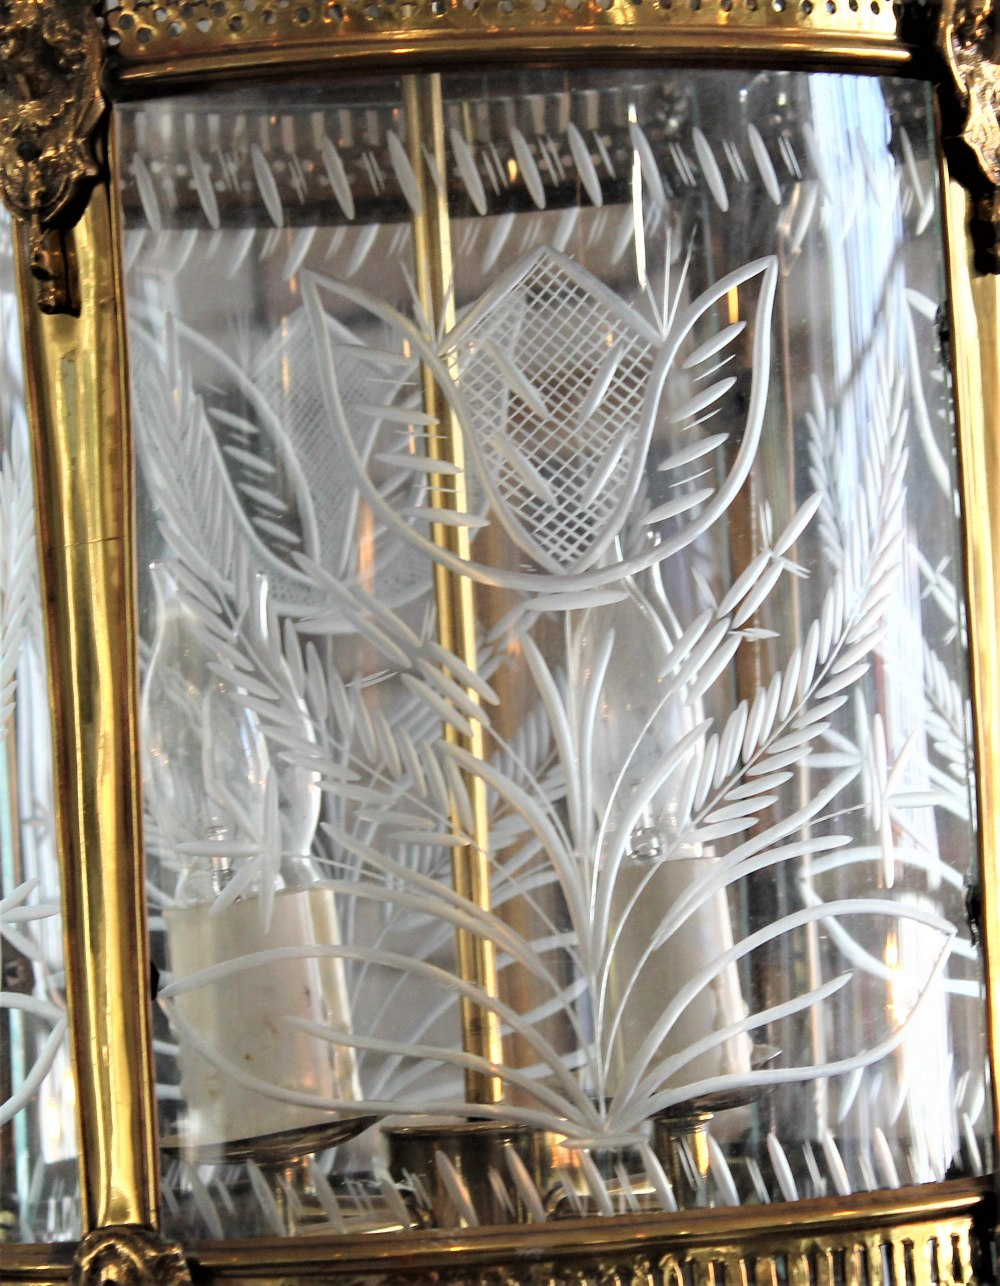 Early 20th C French Glass Chandelier - Image 6 of 7